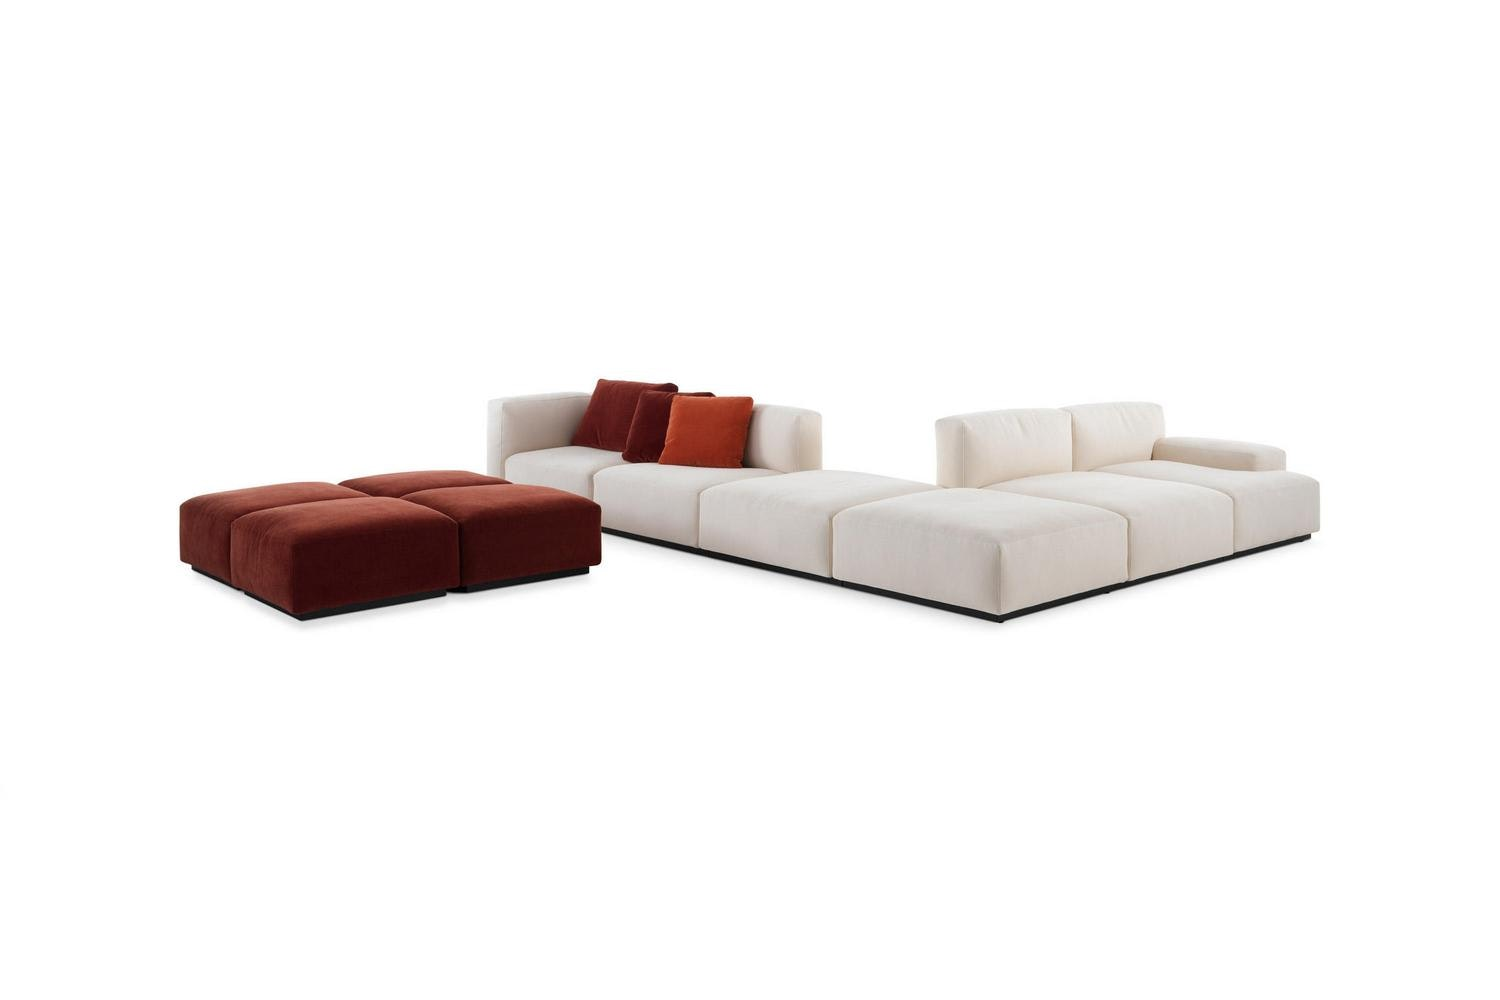 271 Mex Cube Sofa by Piero Lissoni for Cassina